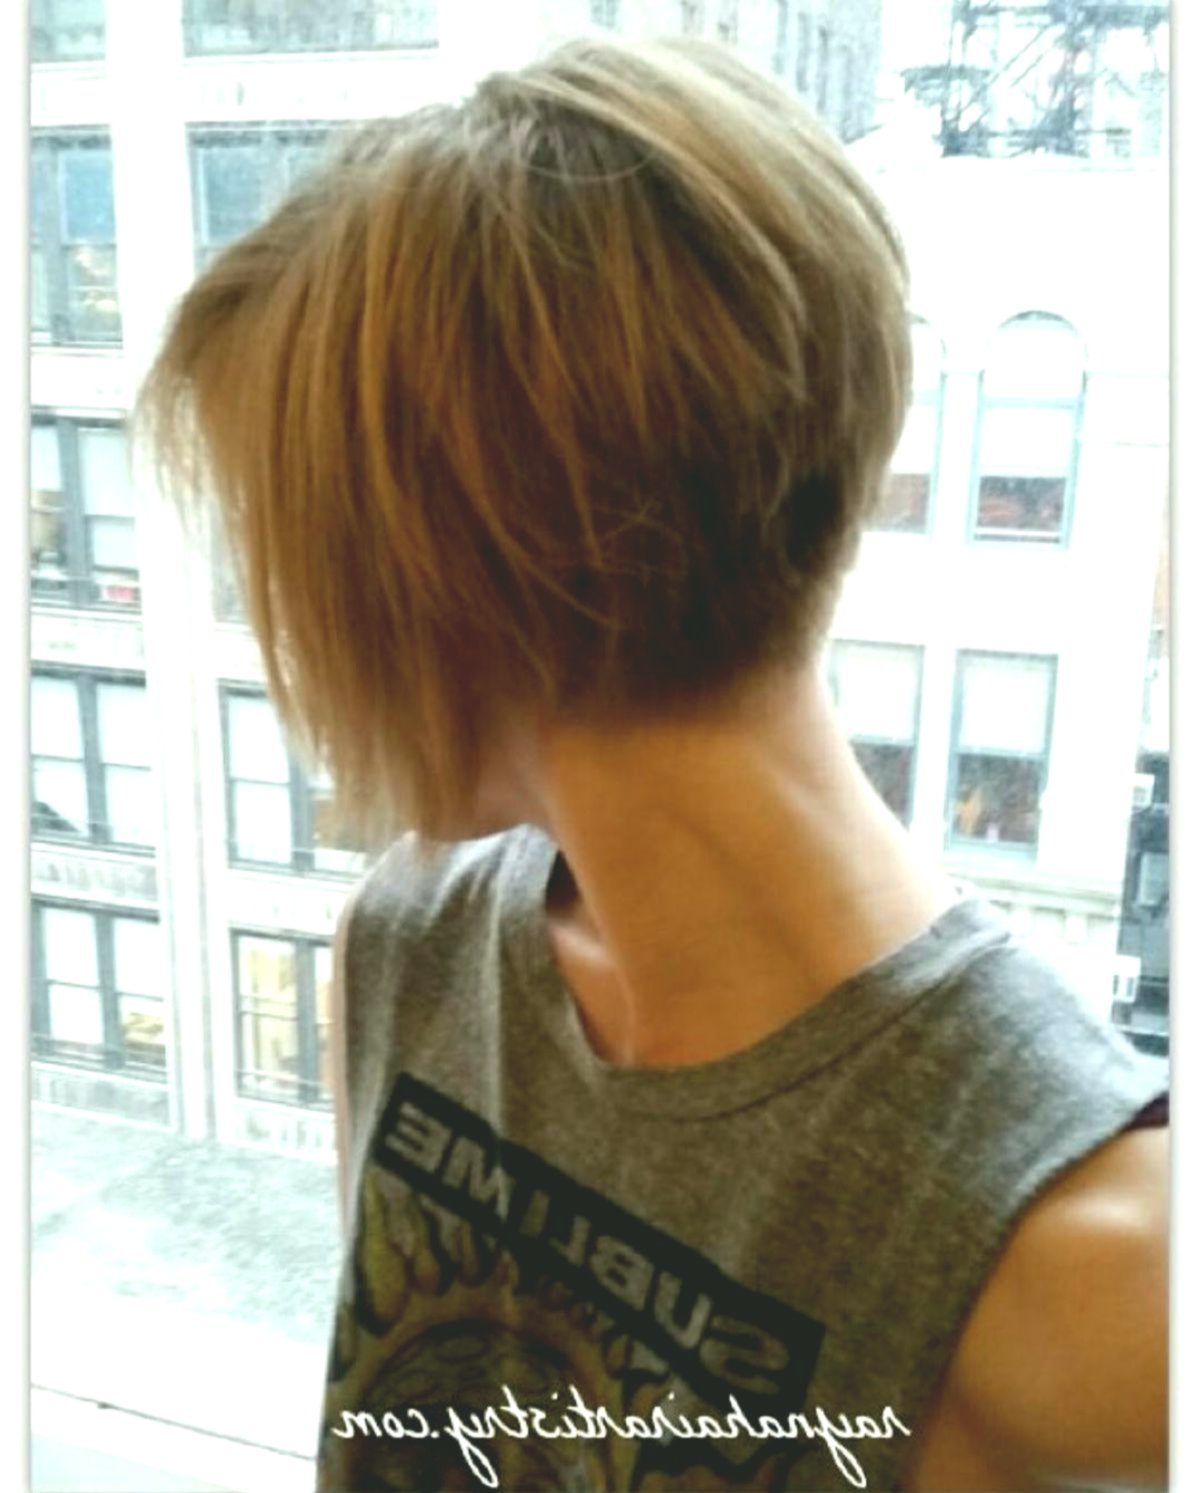 new hairstyles short stage model-Incredible hairstyles short stage layout